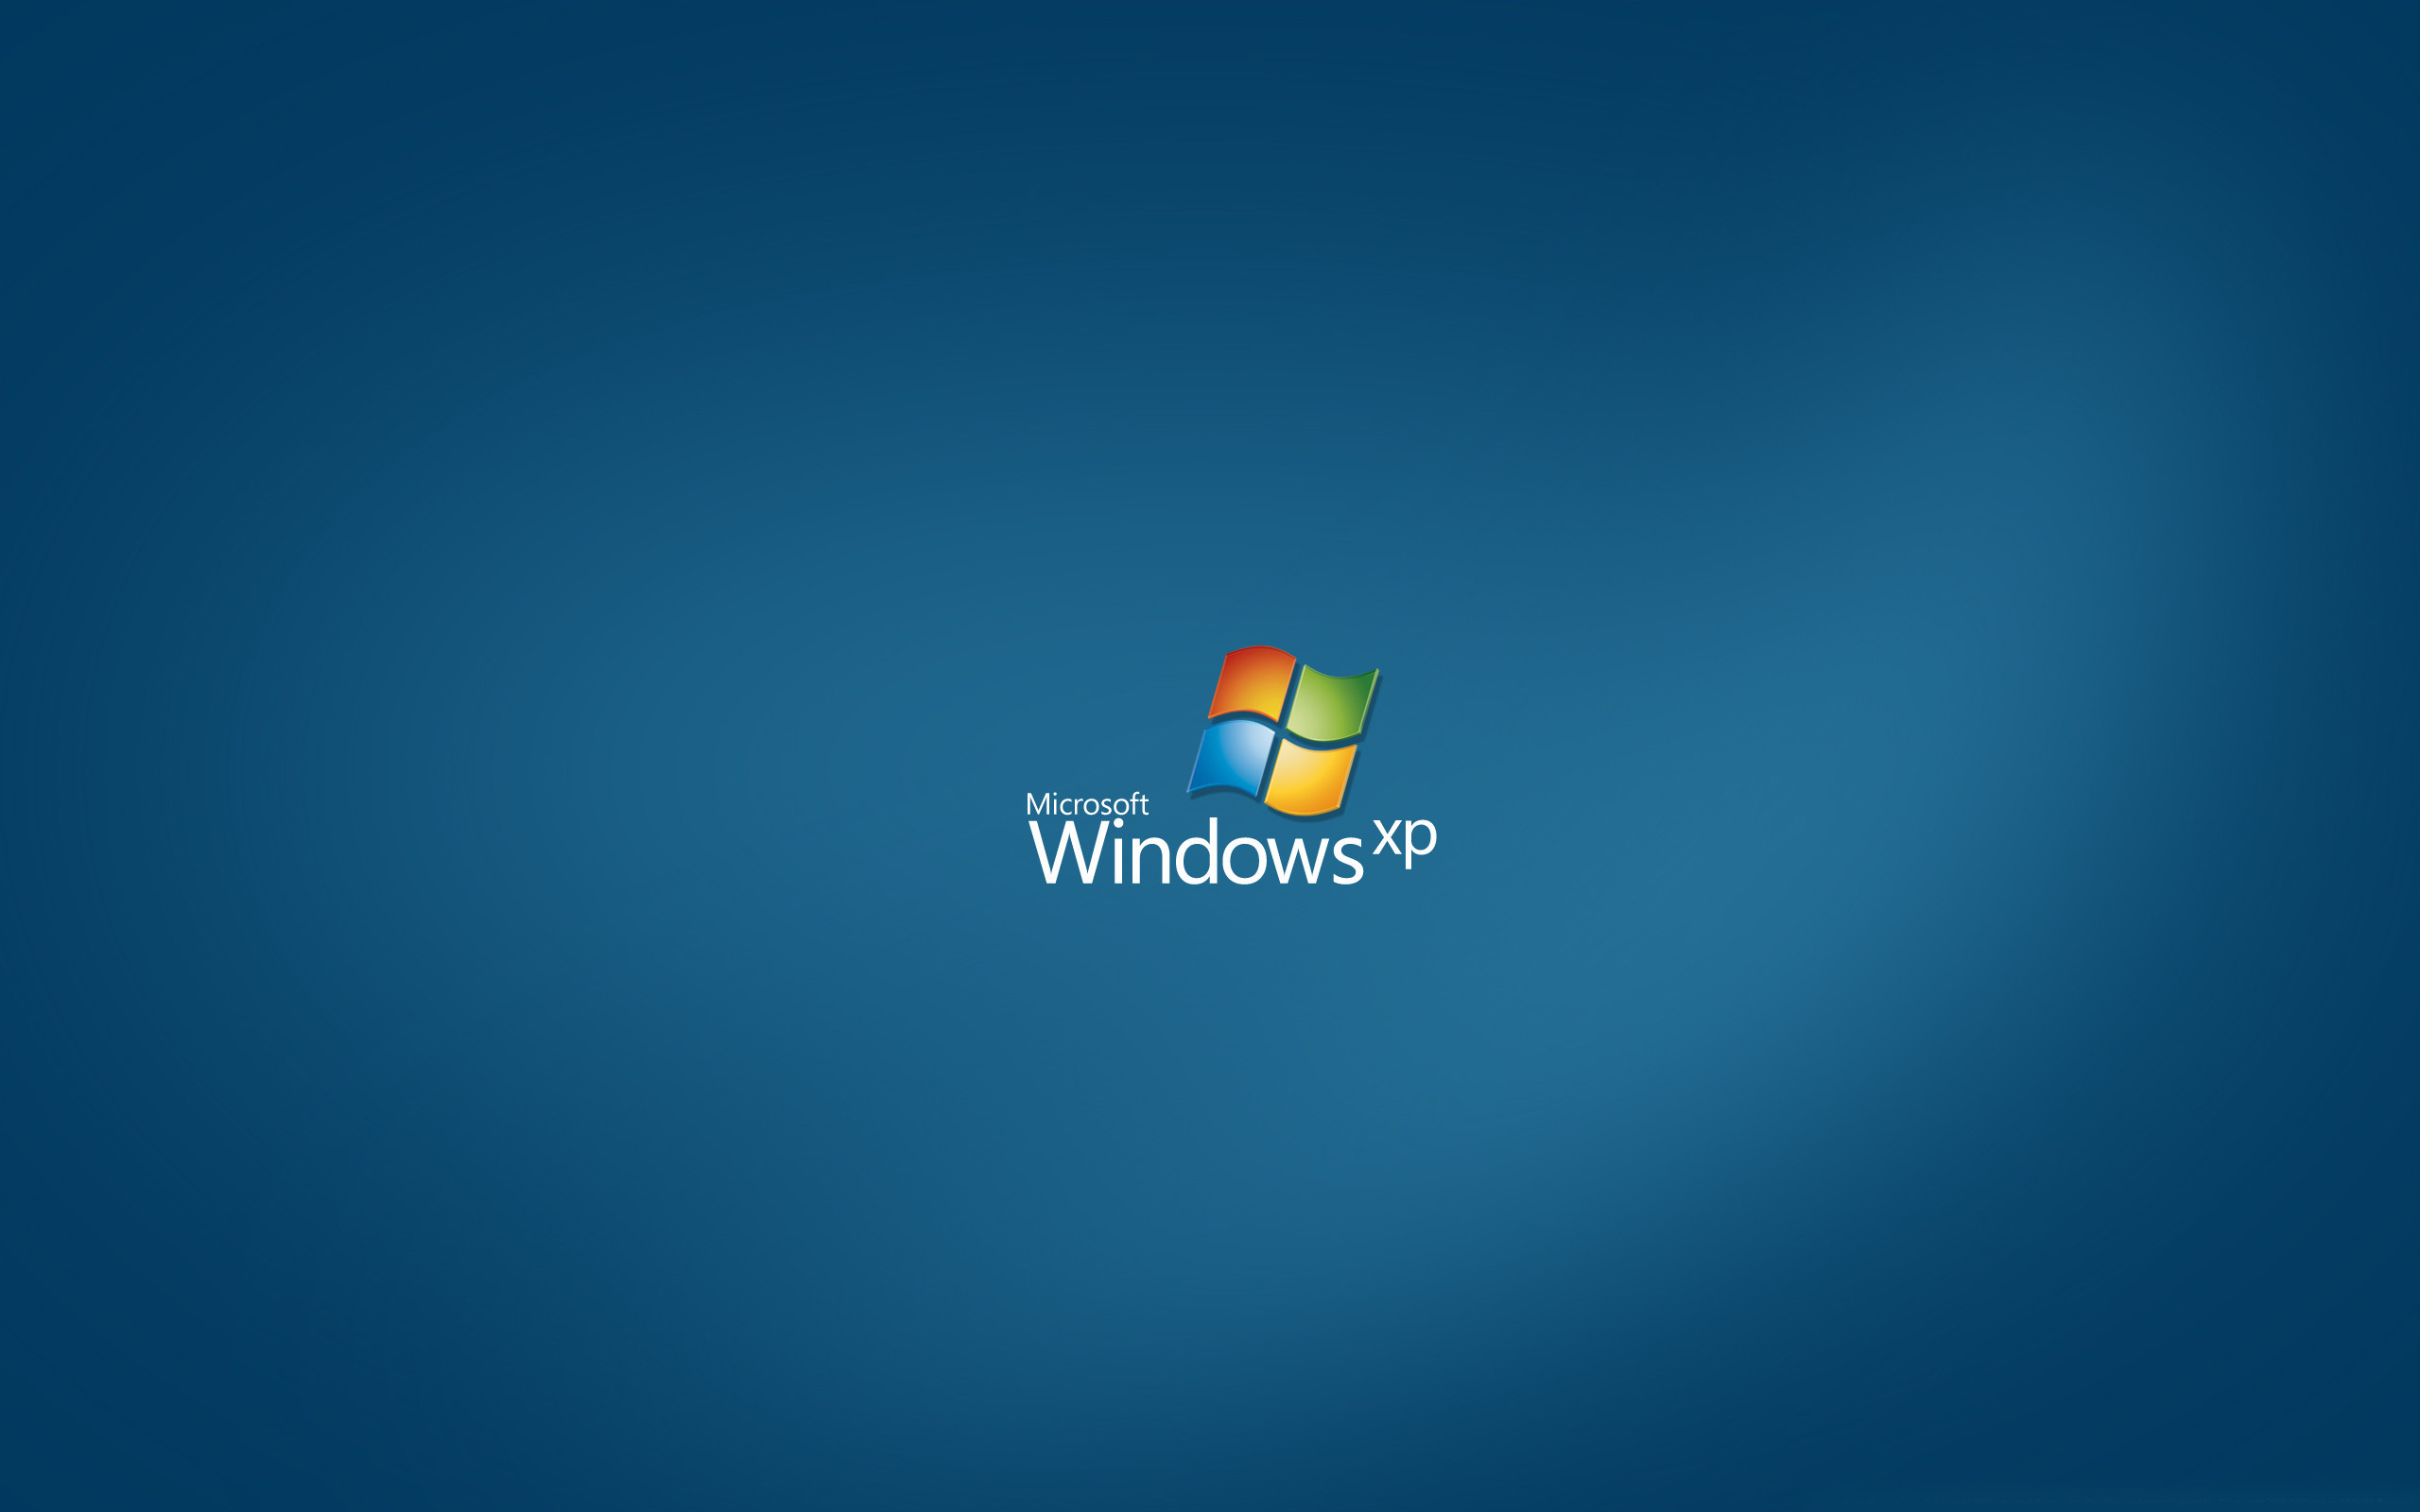 Windows 2018 Server Wallpaper (70+ images)